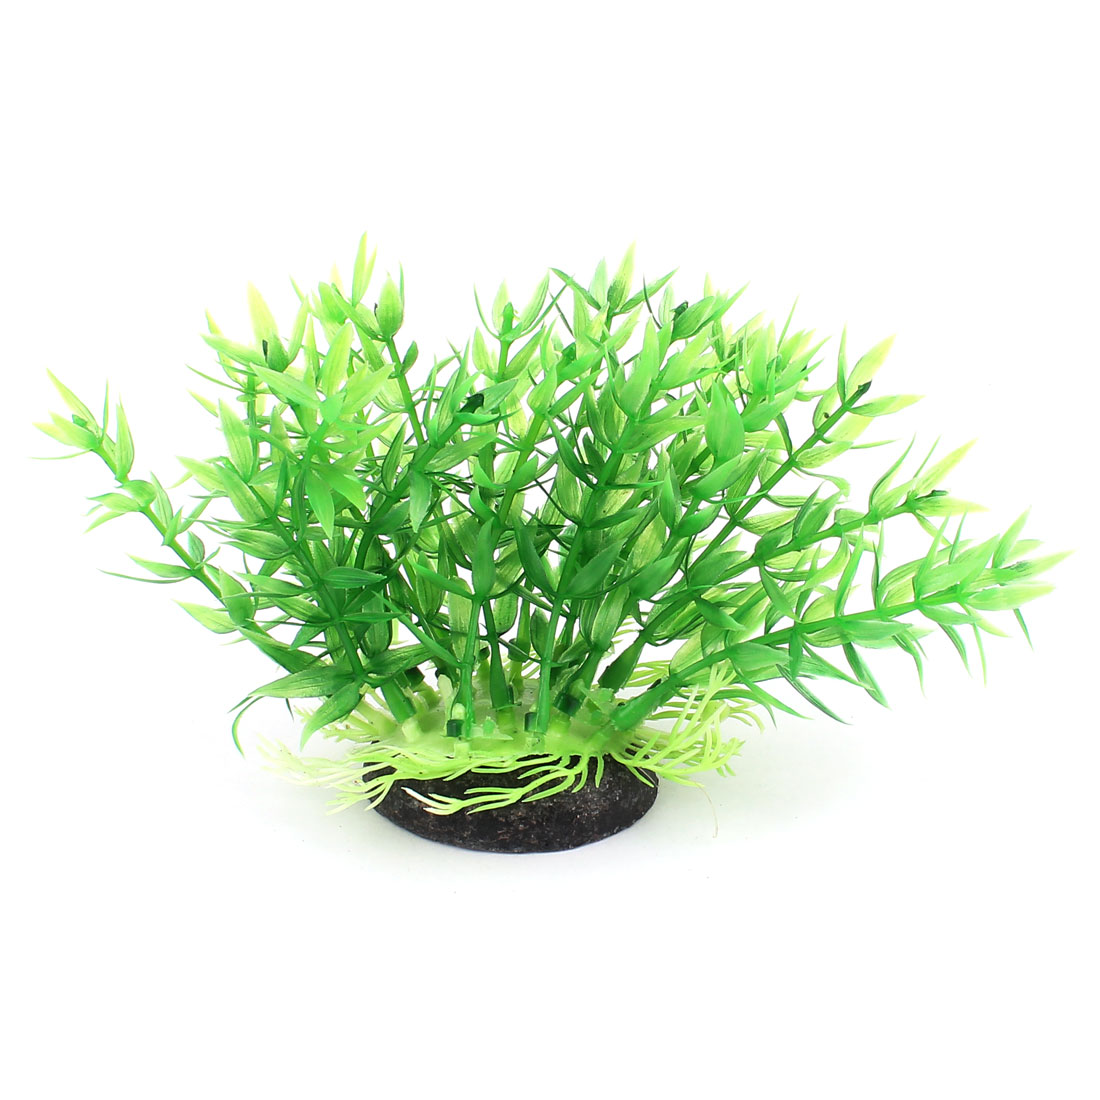 Green Plastic Ceramic Base Artificial Aquarium Plant Aquatic Grass Decor for Fishbowl Fish Tank